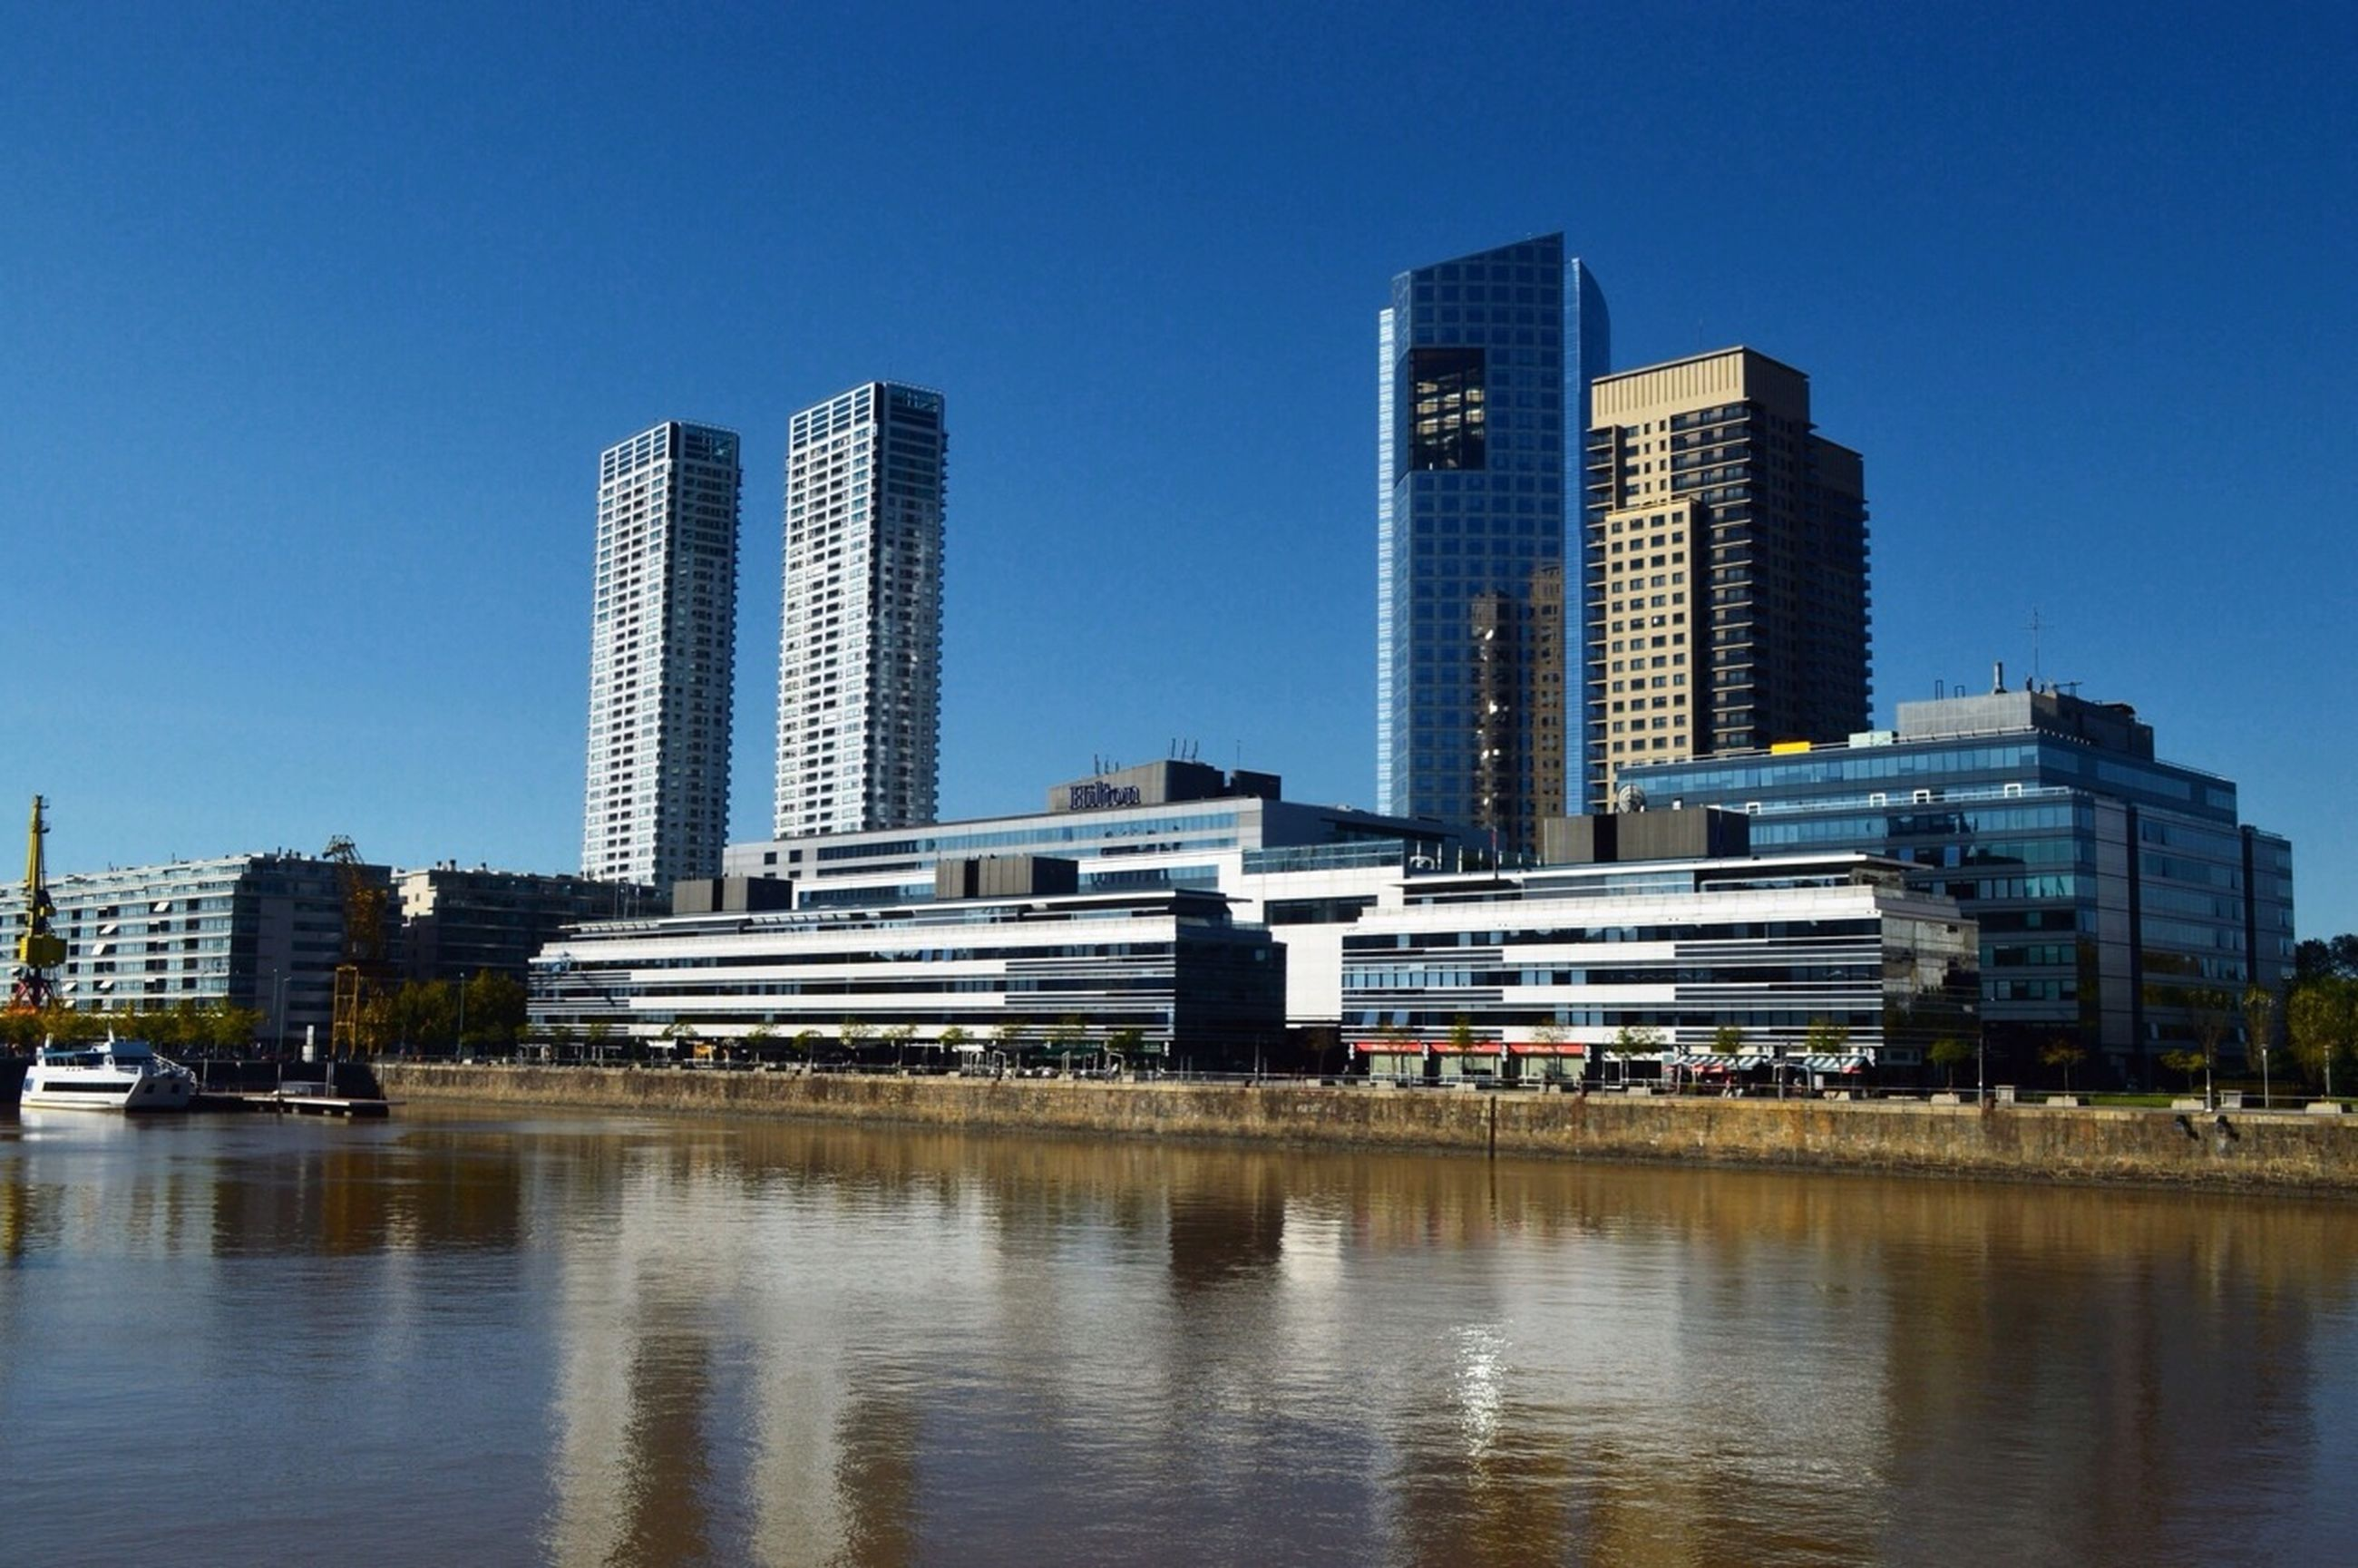 building exterior, architecture, city, skyscraper, built structure, water, modern, office building, clear sky, urban skyline, waterfront, tall - high, cityscape, tower, blue, river, reflection, financial district, building, skyline